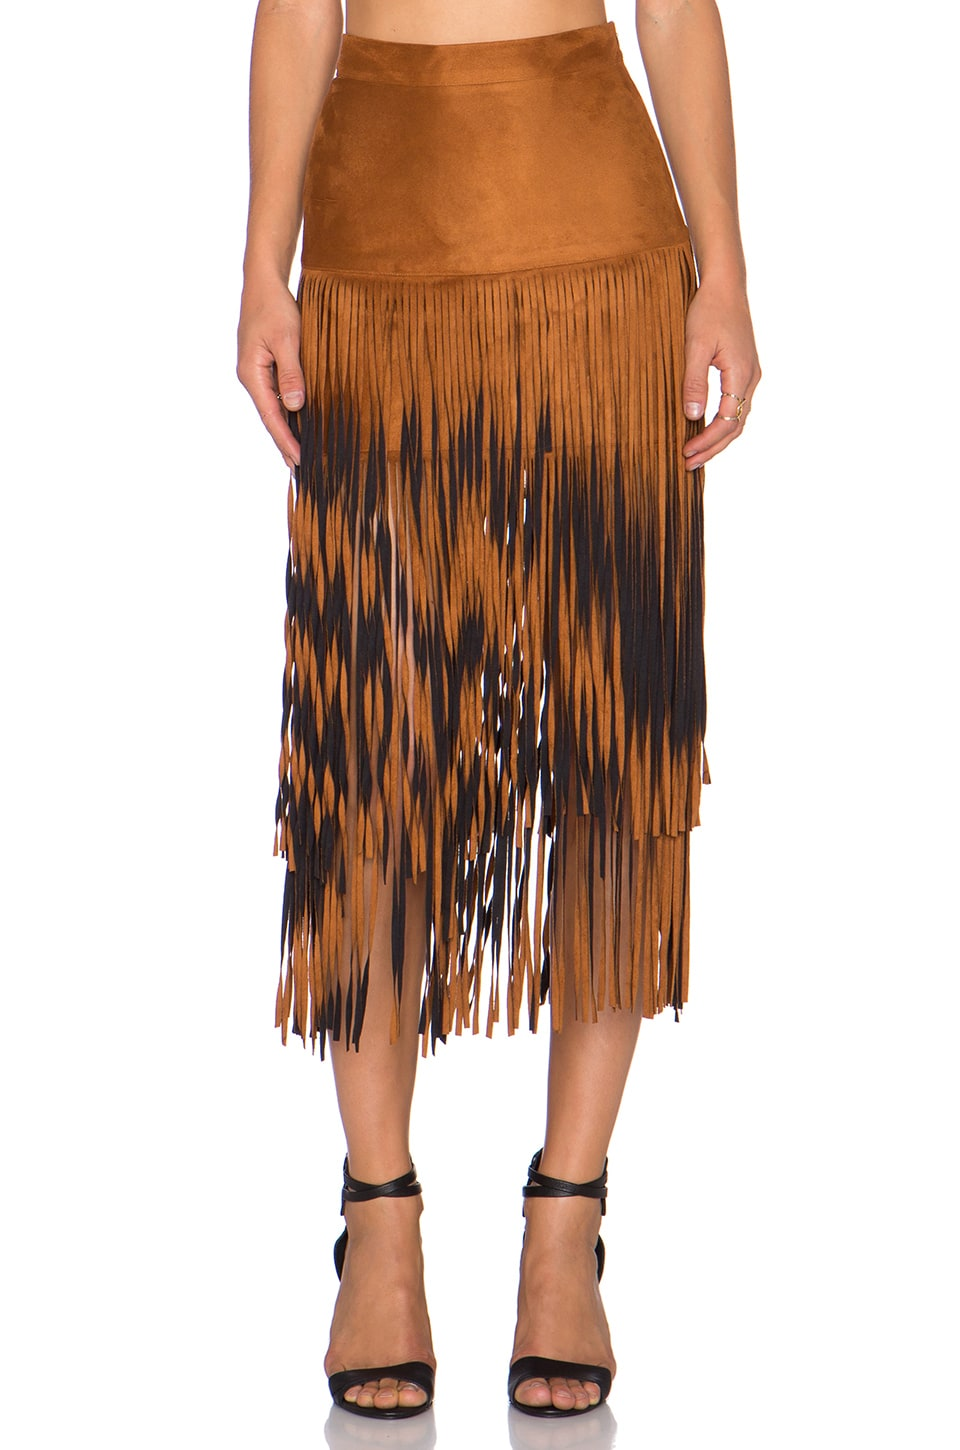 Raga Desert Fringe Skirt in Chestnut